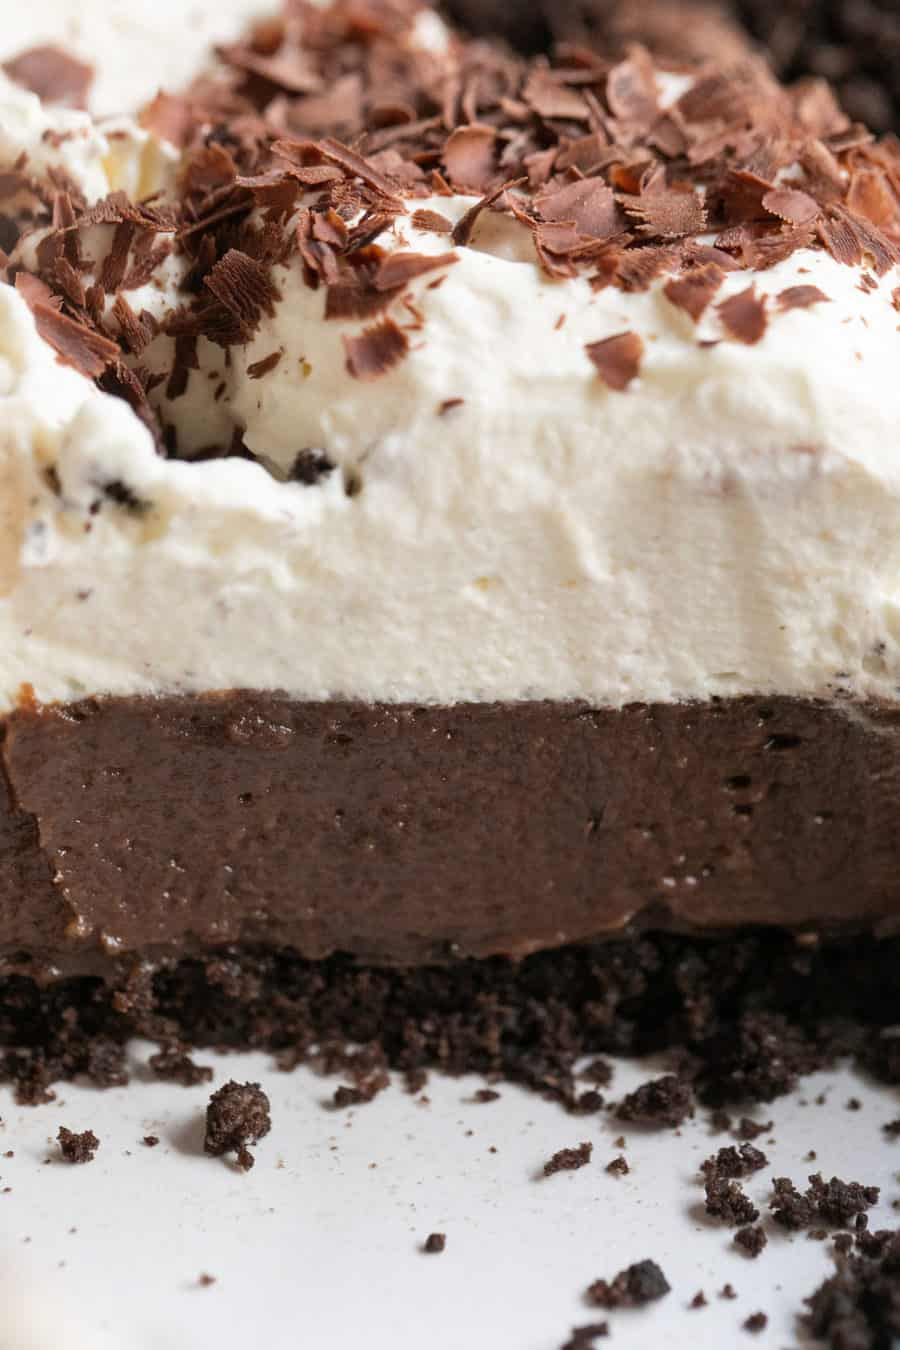 Layers of chocolate pie and crumb crust with whipped cream